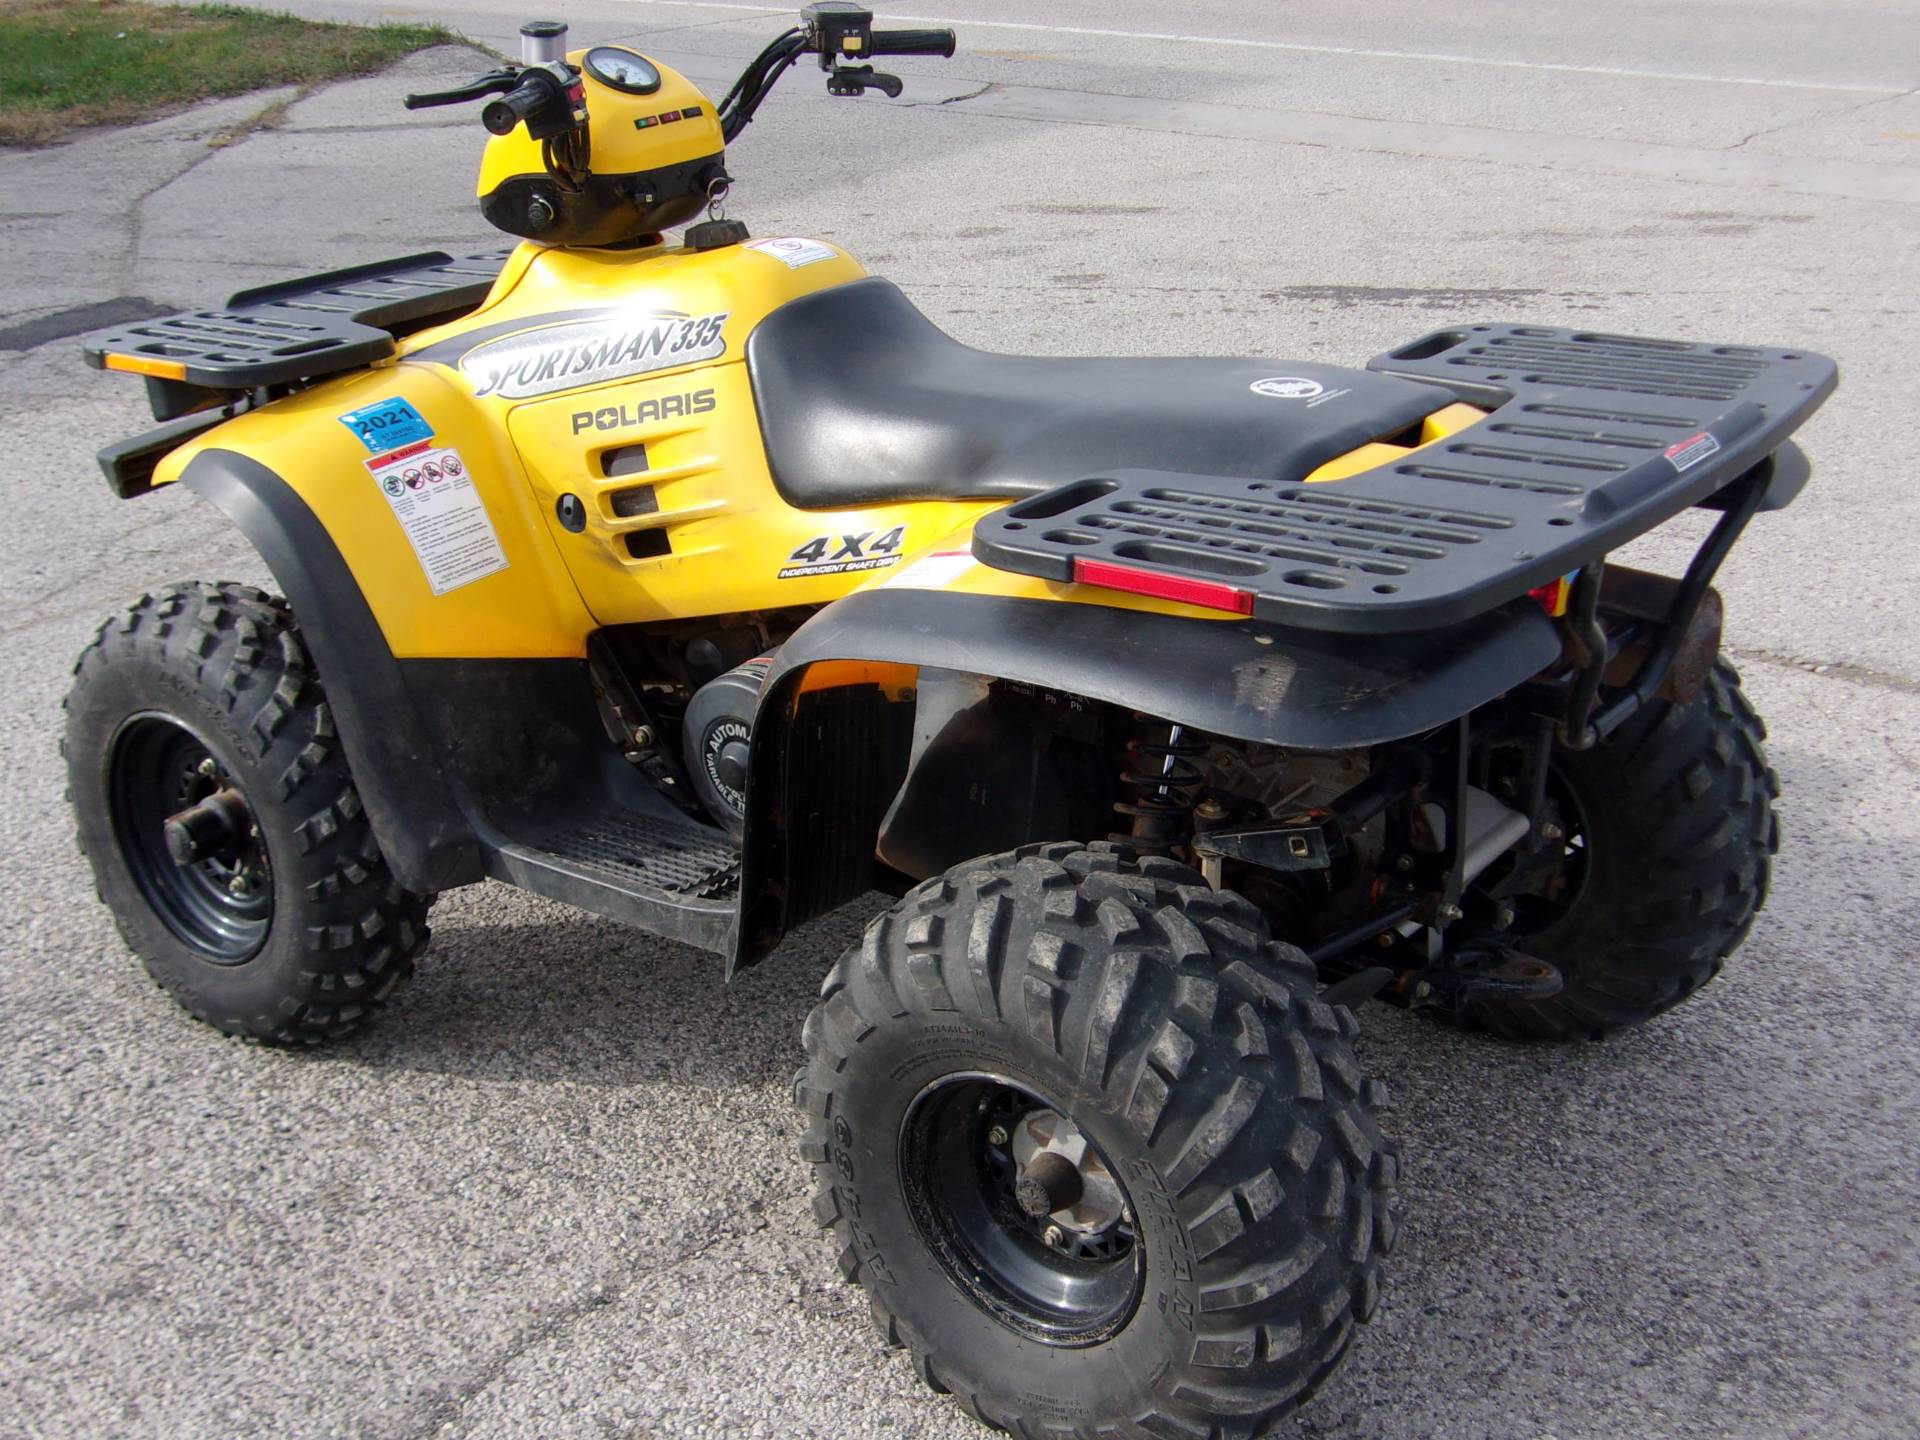 2000 Polaris Sportsman 335 in Mukwonago, Wisconsin - Photo 8